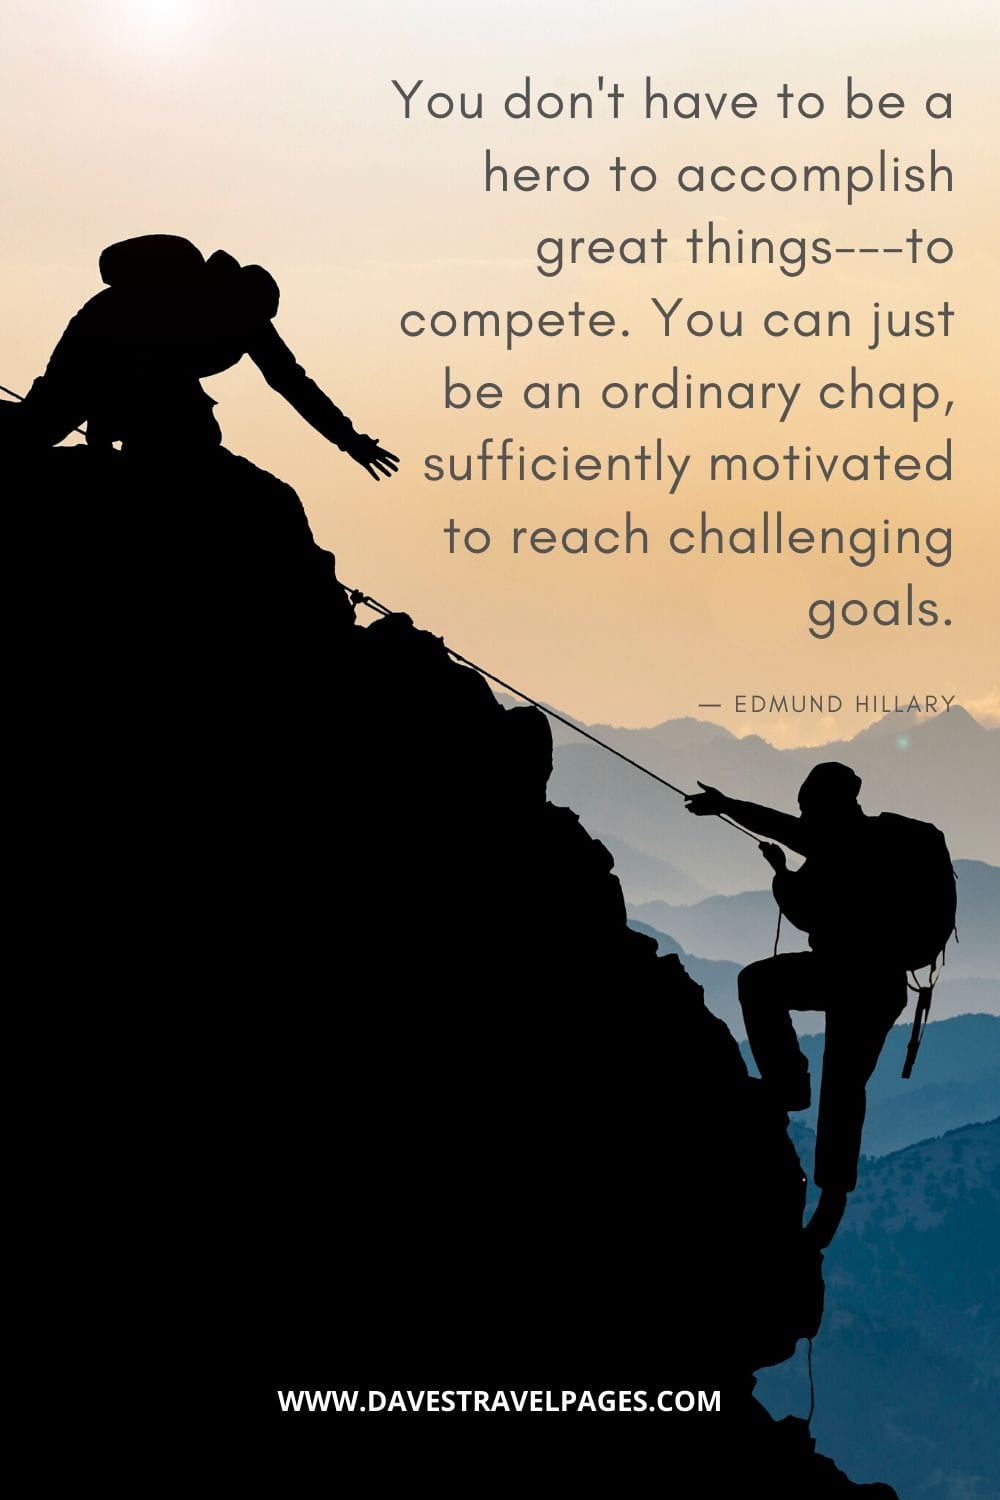 """""You don't have to be a hero to accomplish great things---to compete. You can just be an ordinary chap, sufficiently motivated to reach challenging goals."" ― Edmund Hillary Motivational Quote"